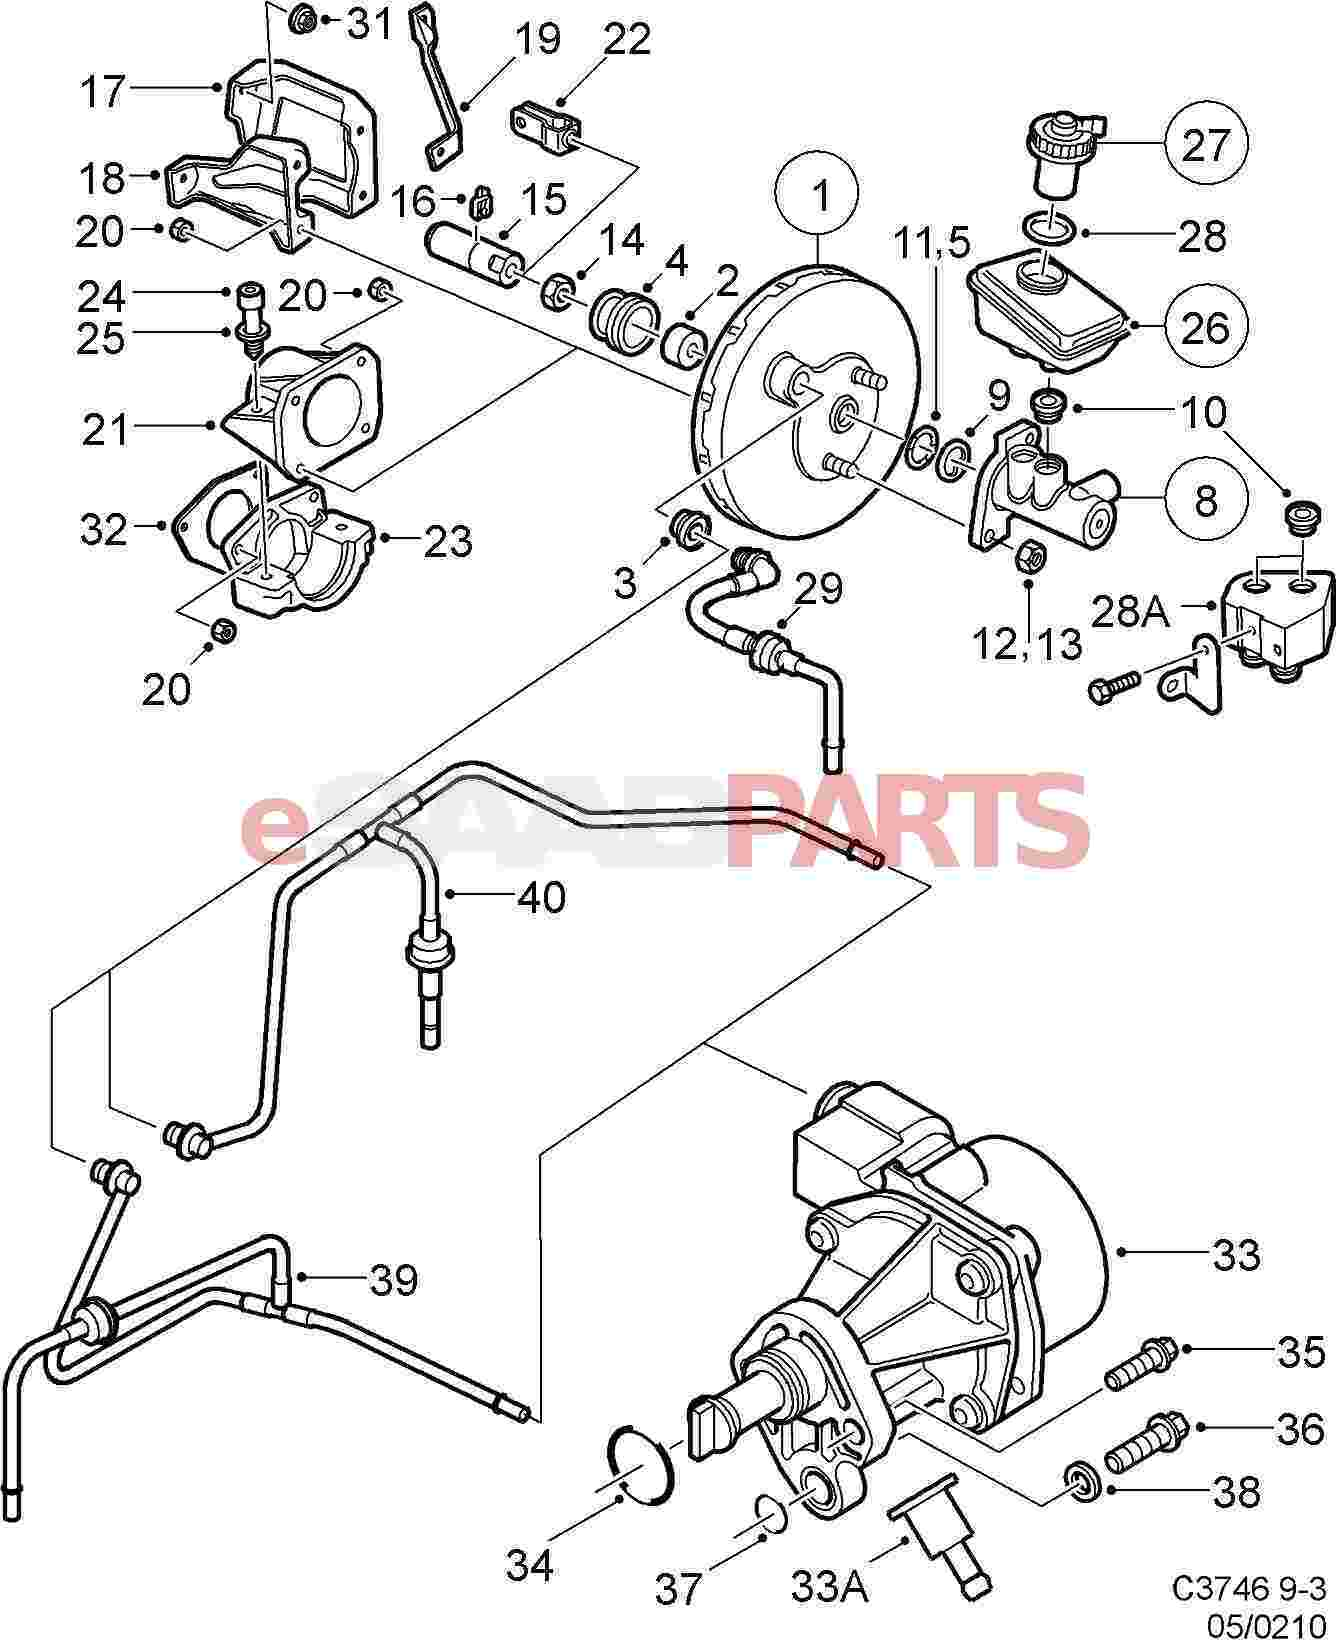 2004 Saab 9 5 Engine Diagram Best Electrical Circuit Wiring 3 Library Rh 92 Codingcommunity De 2001